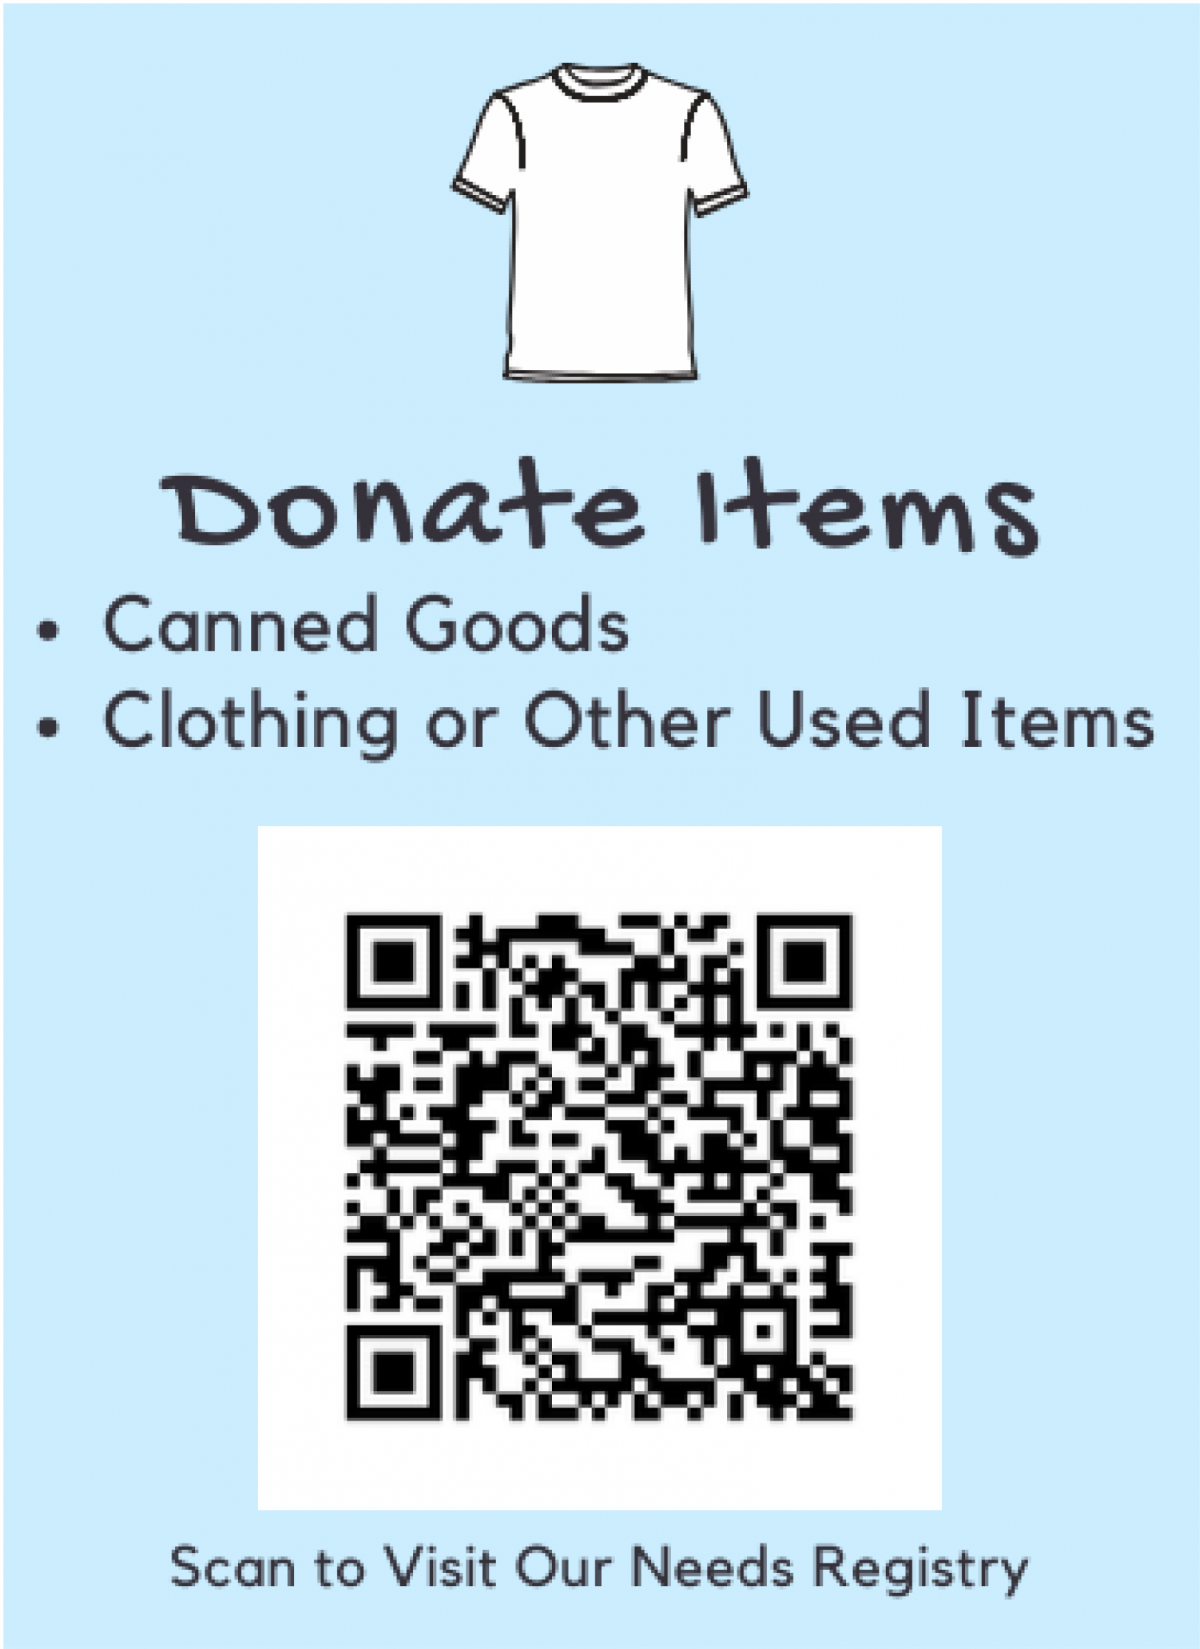 Donate Items like Clothing or Canned Goods to Help the Homeless on Oahu and Others Through River of Life Mission a Local Non-Profit Organization